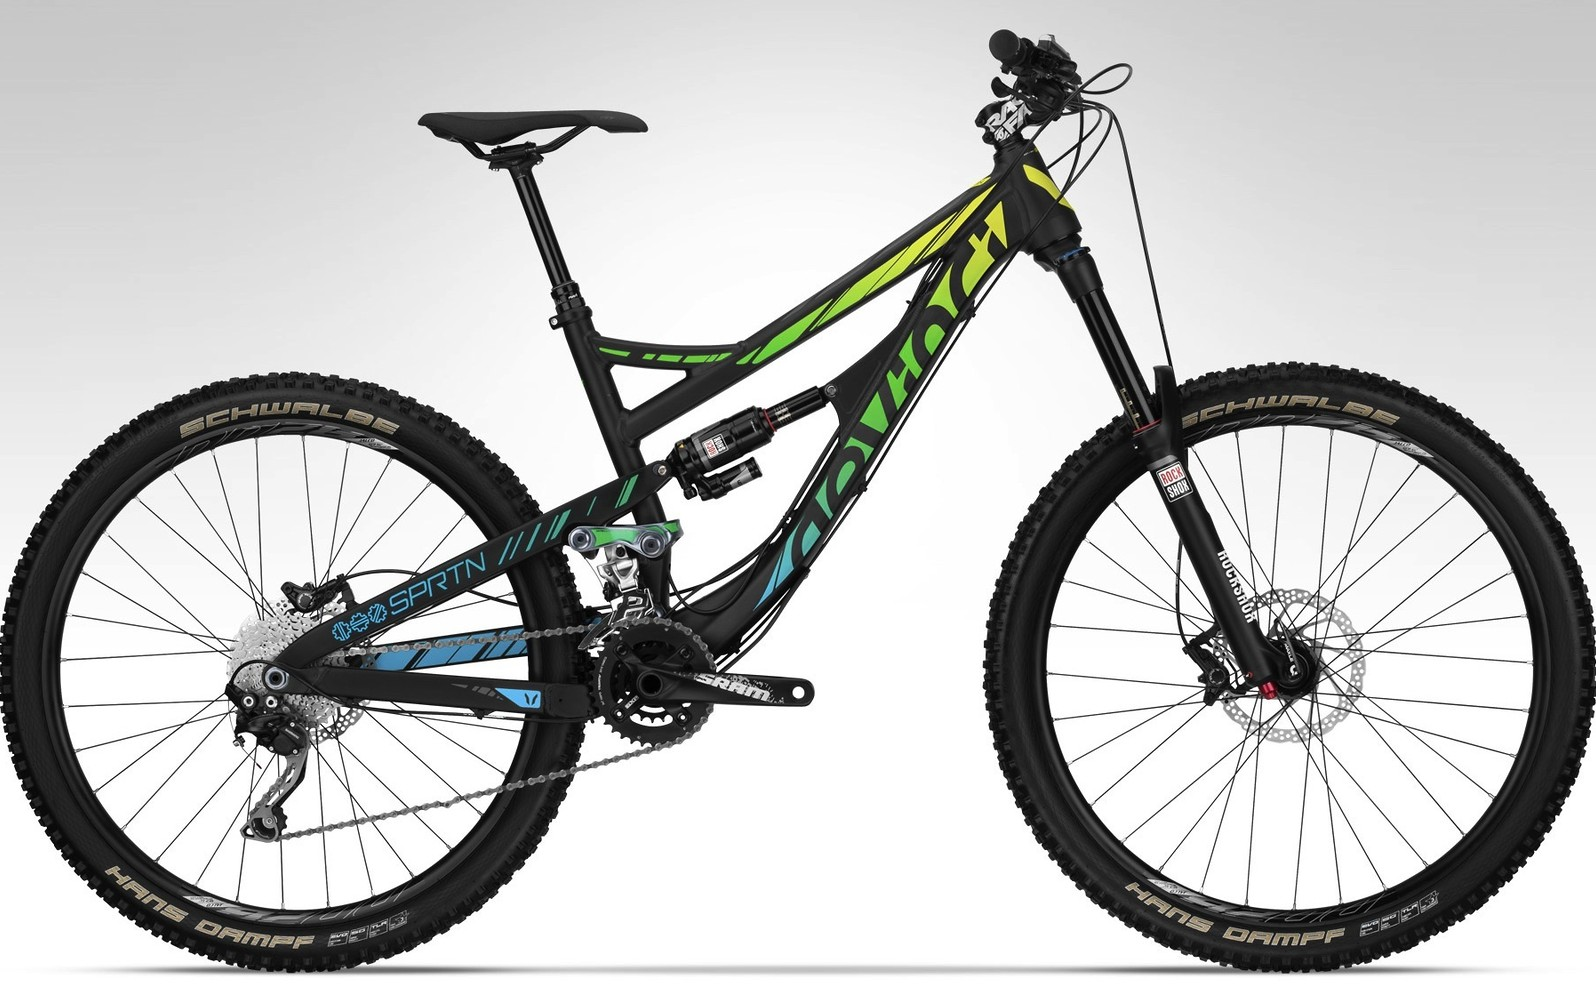 Devinci SPARTAN XP bike